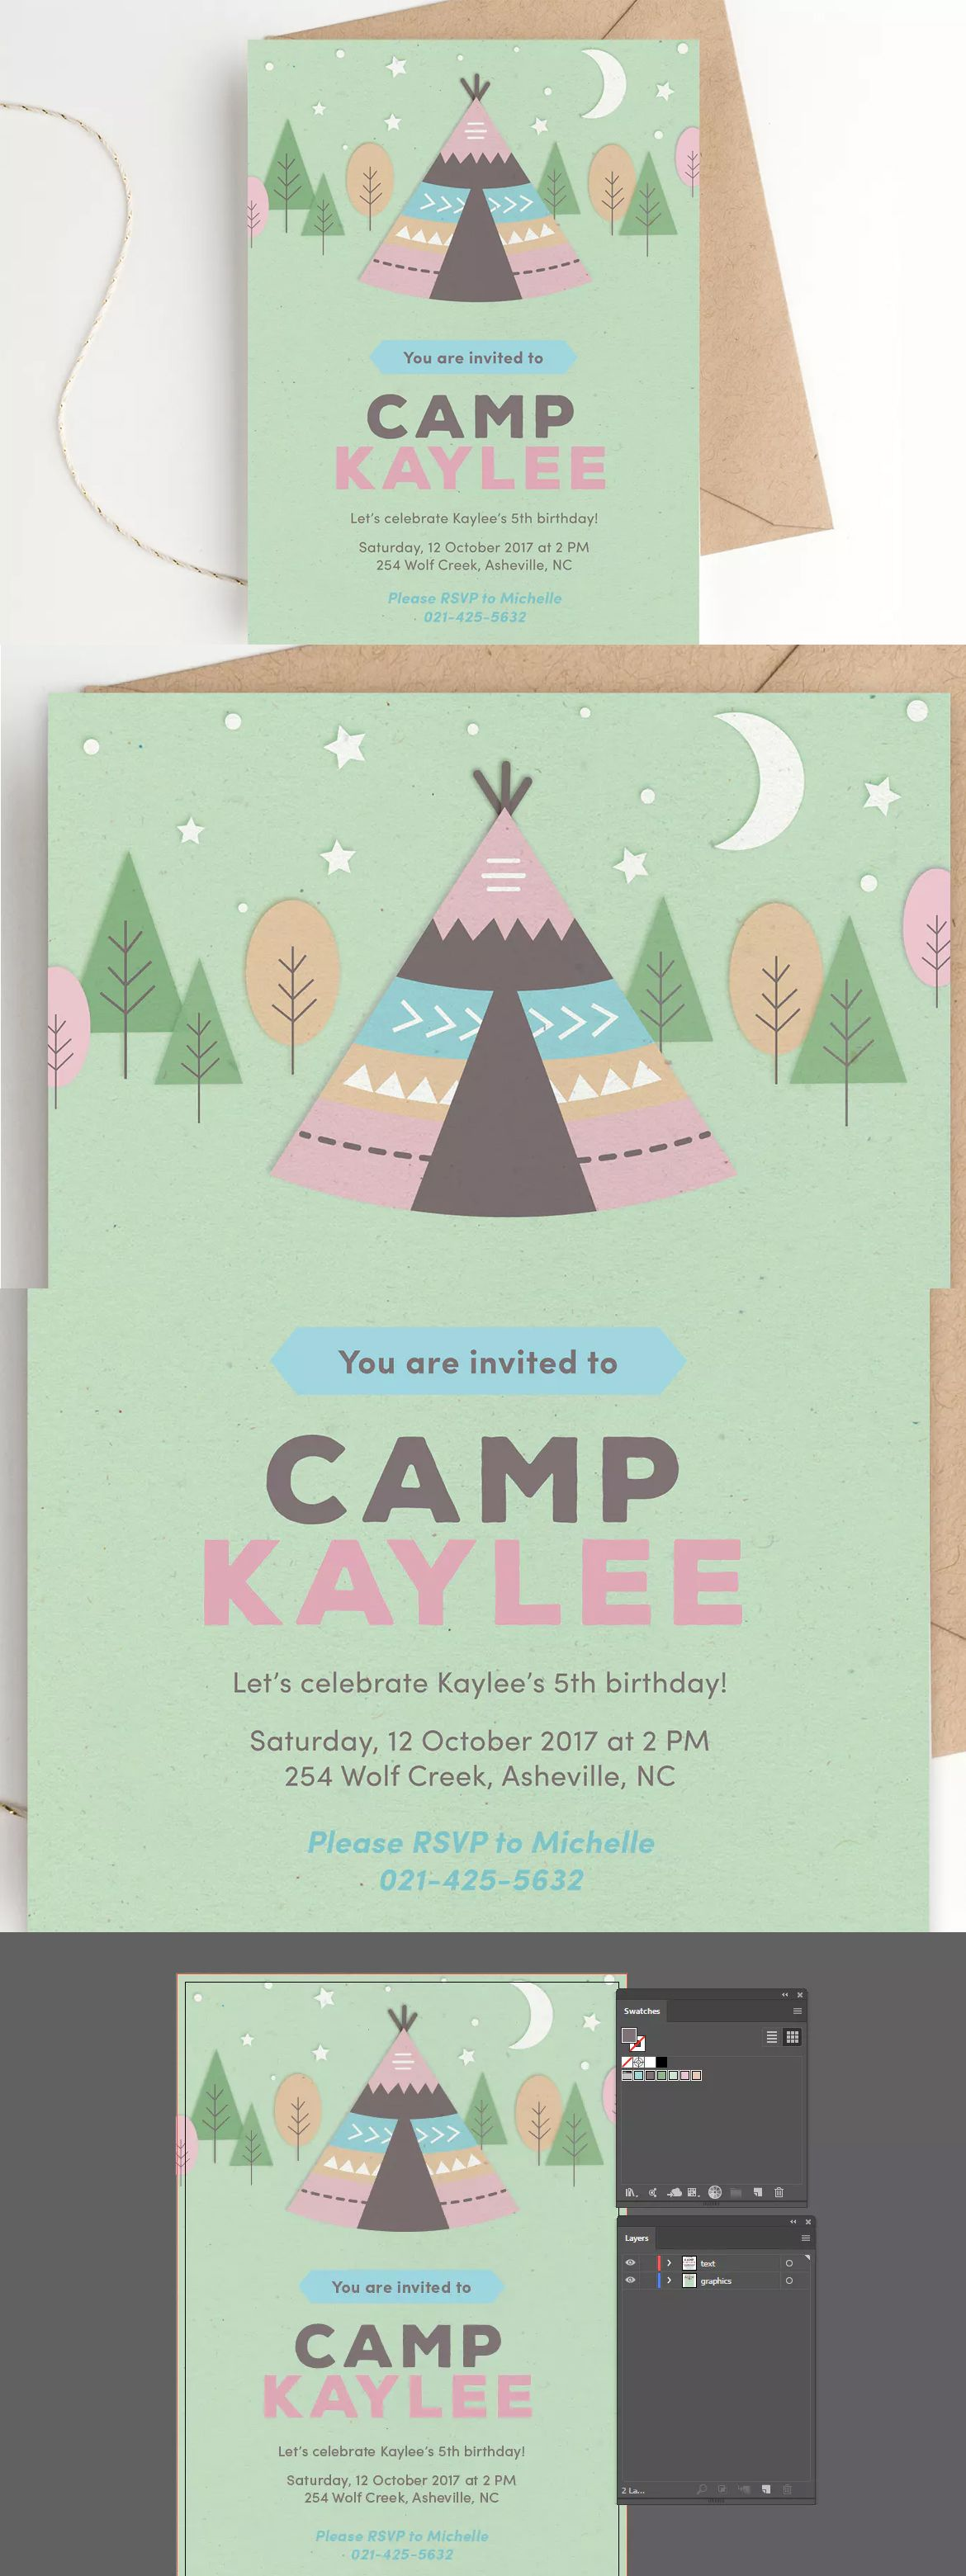 camping birthday party invitation template ai a5 invitation card